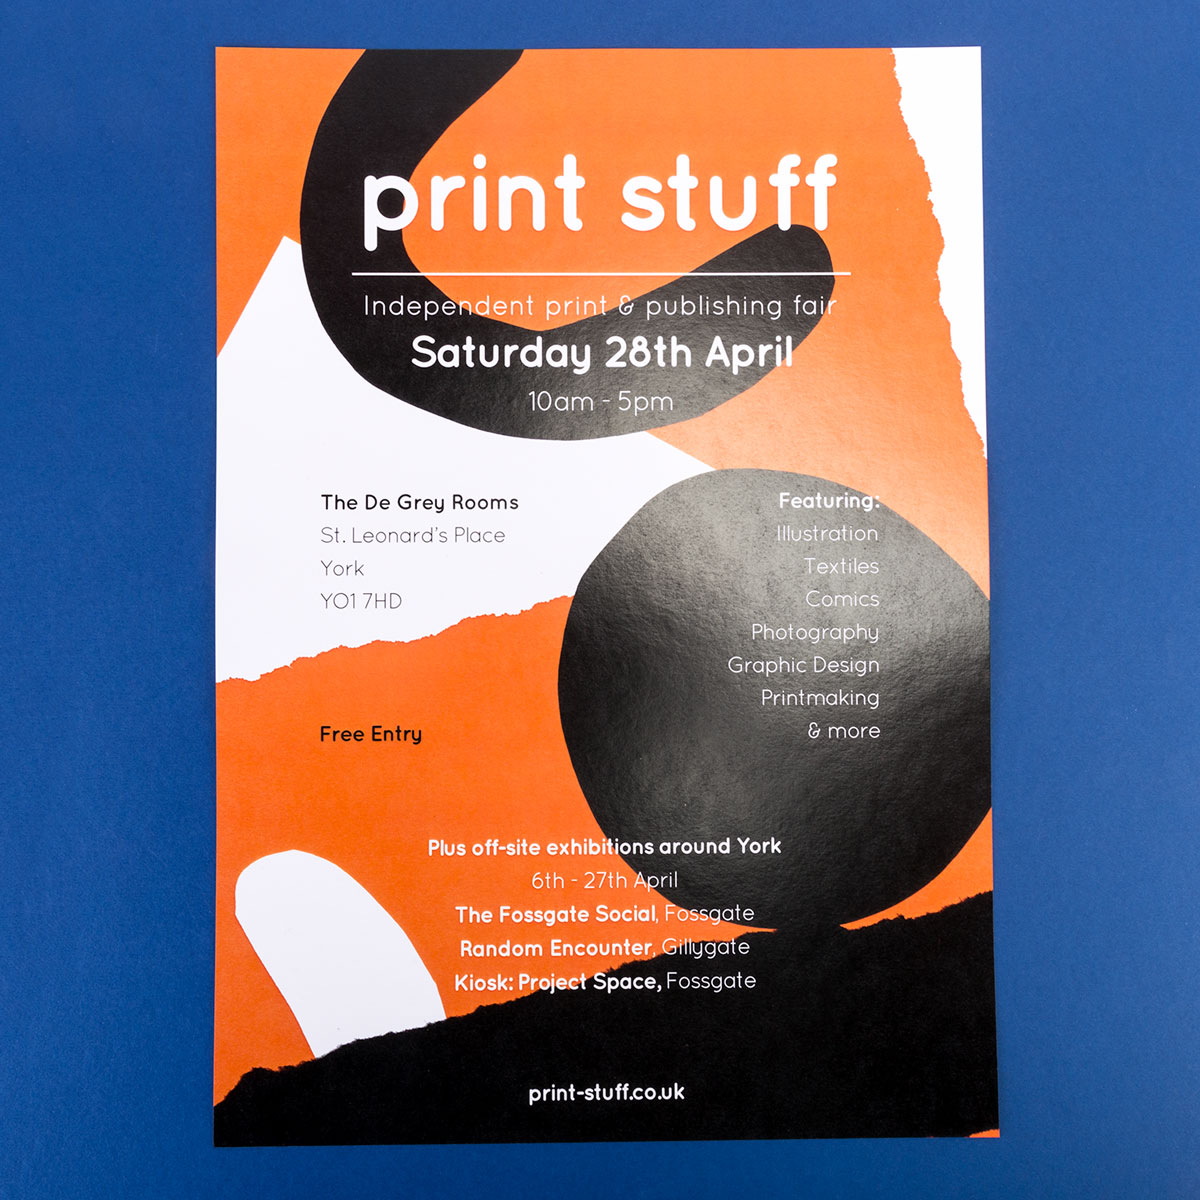 200 x A4 Posters for £32